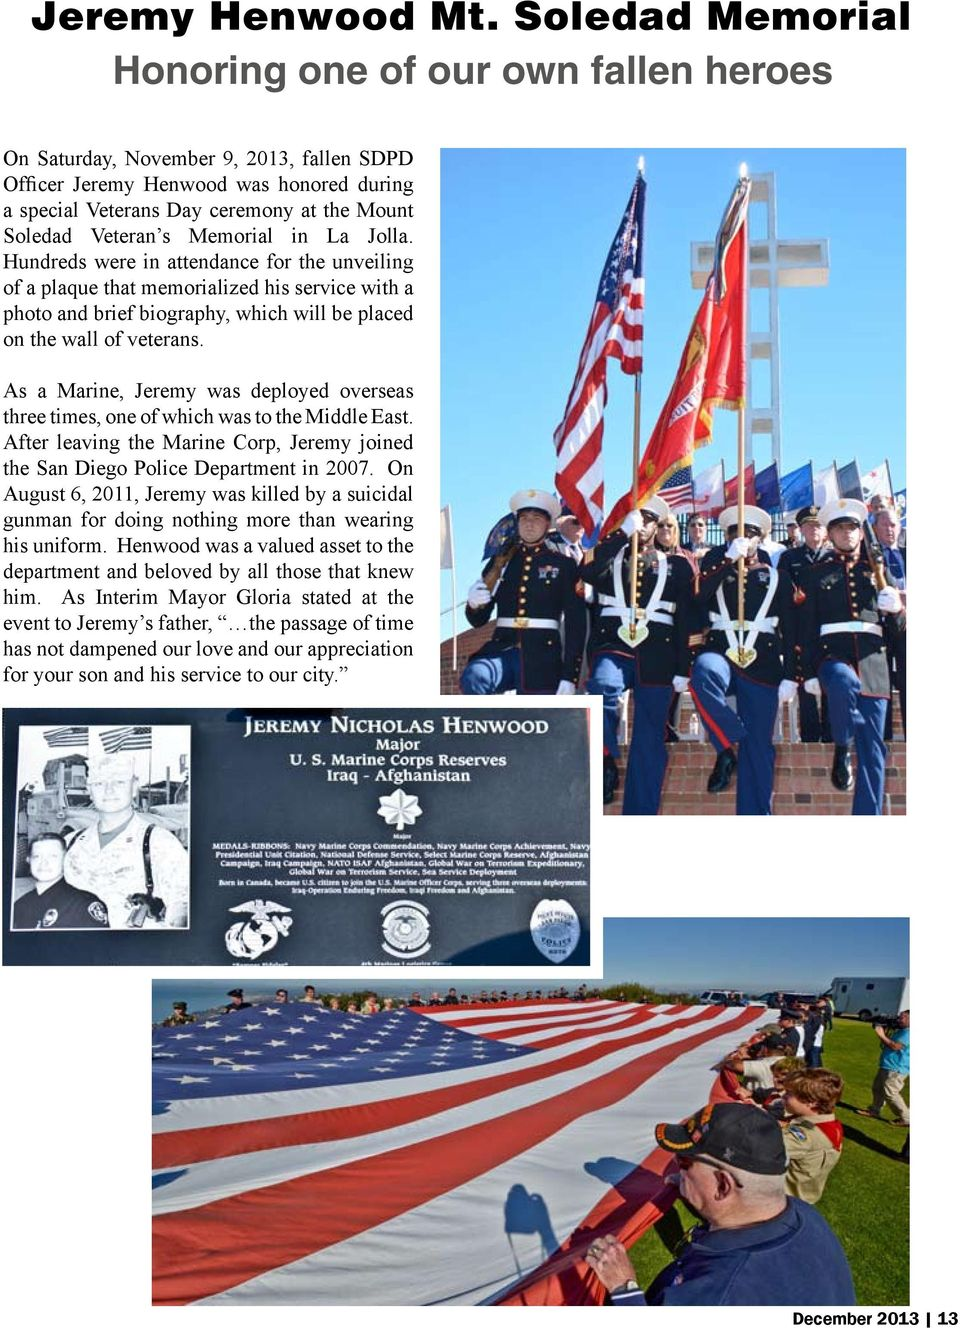 Veteran s Memorial in La Jolla. Hundreds were in attendance for the unveiling of a plaque that memorialized his service with a photo and brief biography, which will be placed on the wall of veterans.